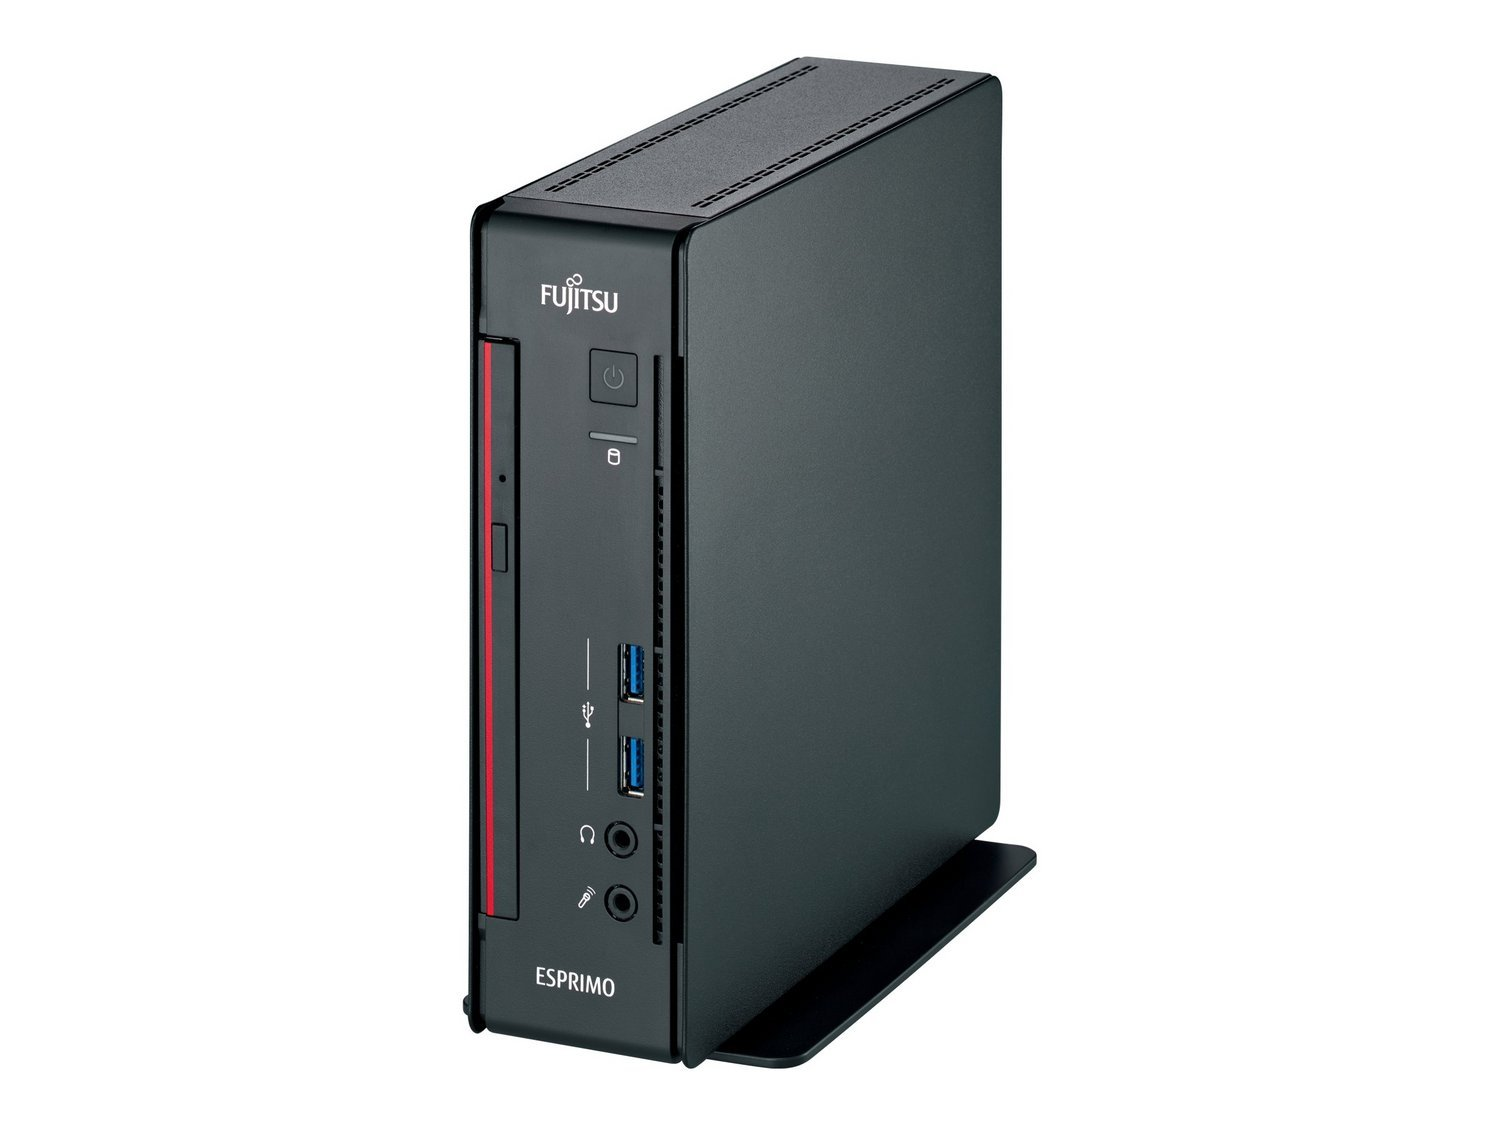 Fujitsu ESPRIMO Q556/2 2.2GHz i5-6400T Mini PC Negro Mini PC - Ordenador de sobremesa (2,2 GHz, 6ª Generación de procesadores Intel® Core™ i5, 8 GB, 256 GB, DVD Super Multi, Windows 10 Pro)